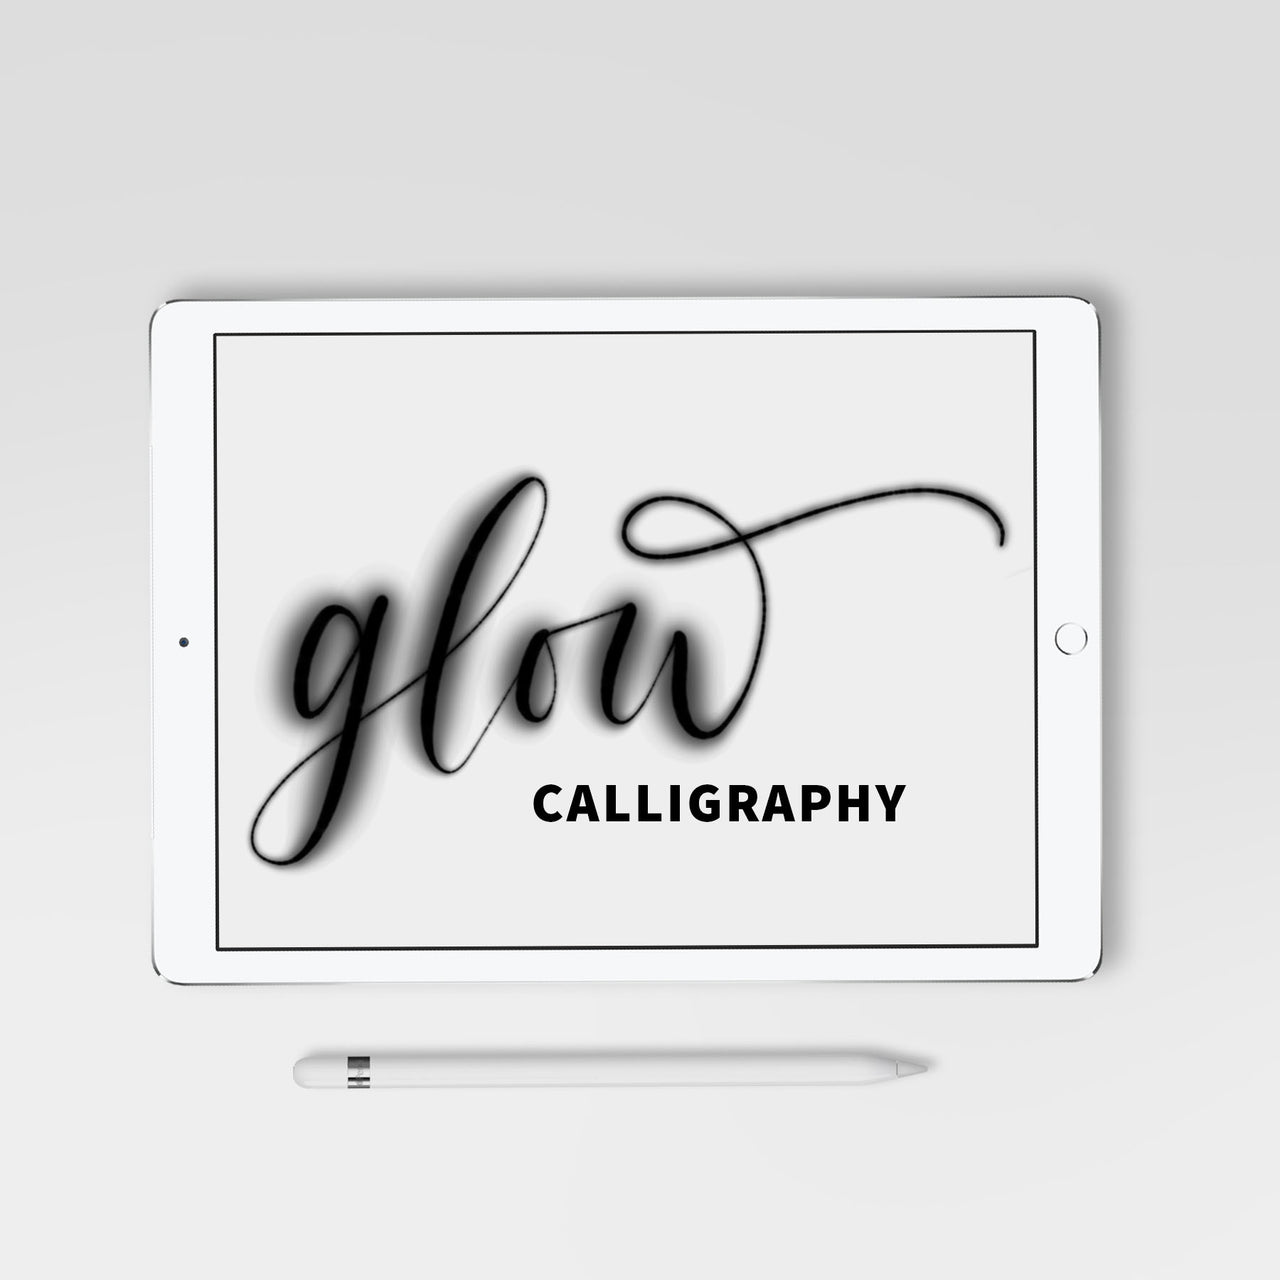 Glow Calligraphy Procreate Brush - Hewitt Avenue